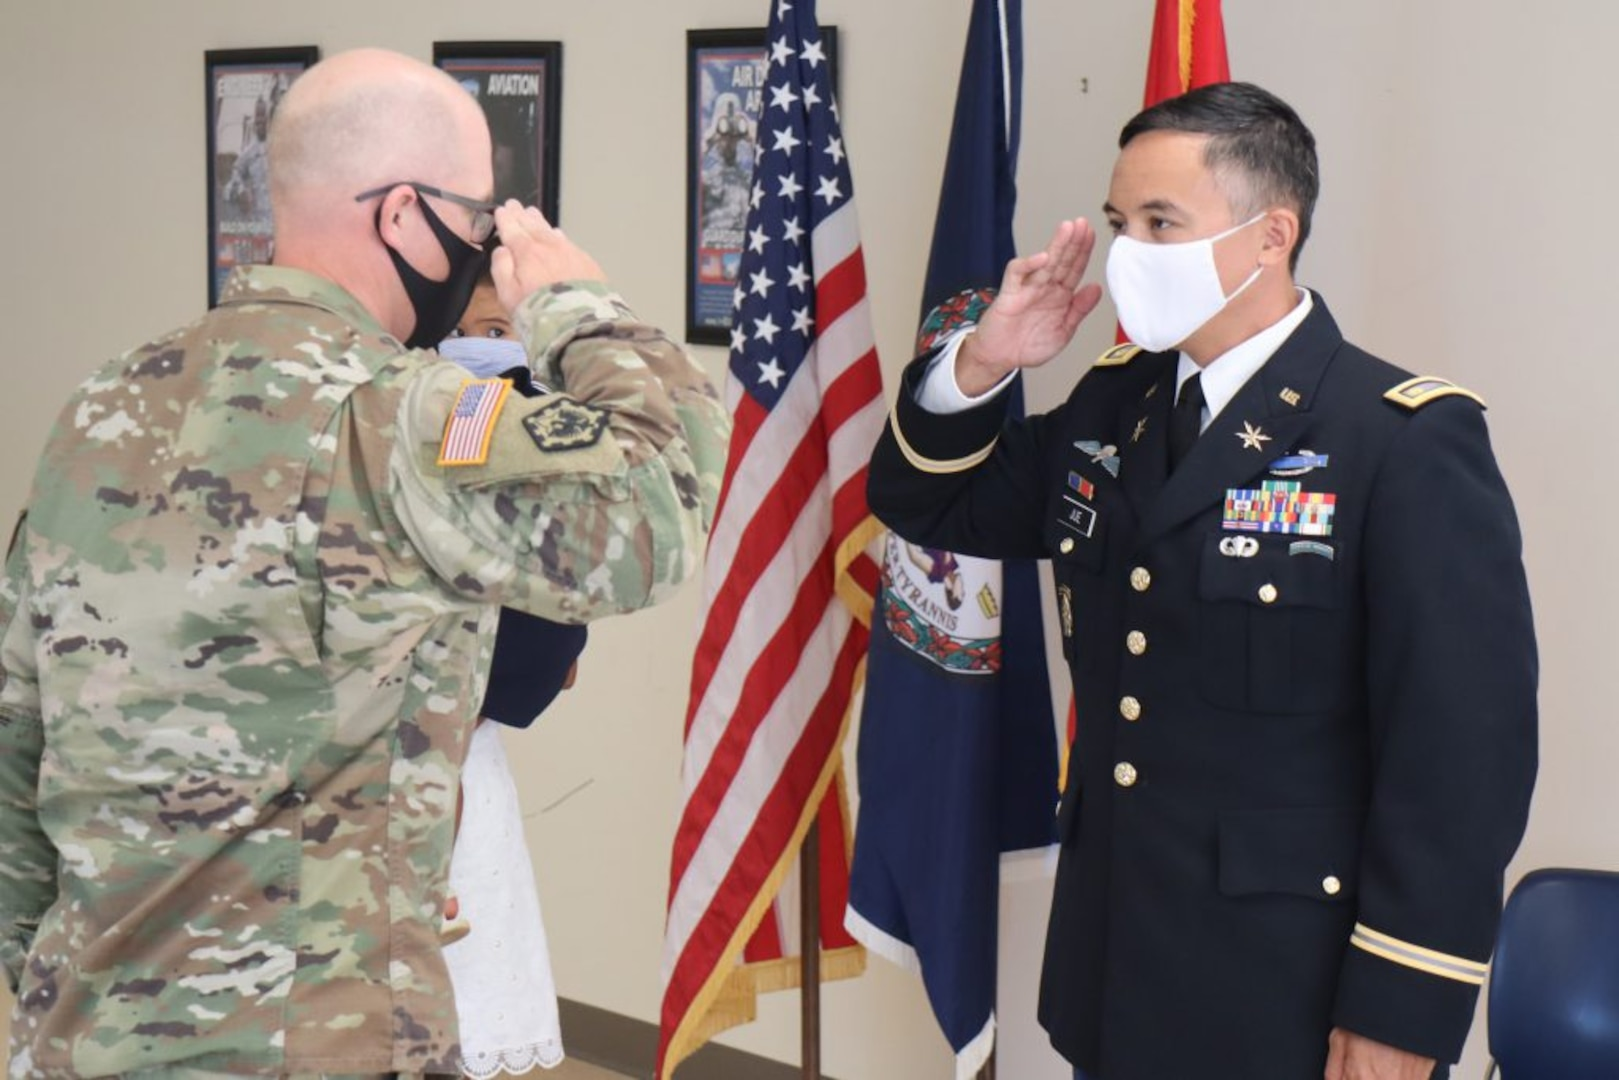 Maj. Gen. Timothy P. Williams, the Adjutant General of Virginia, administers the oath of office to newly-promoted Maj. Waldon W. Jue Aug. July 30, 2020, in Fairfax, Virginia. (U. S. National Guard photo by Cotton Puryear)